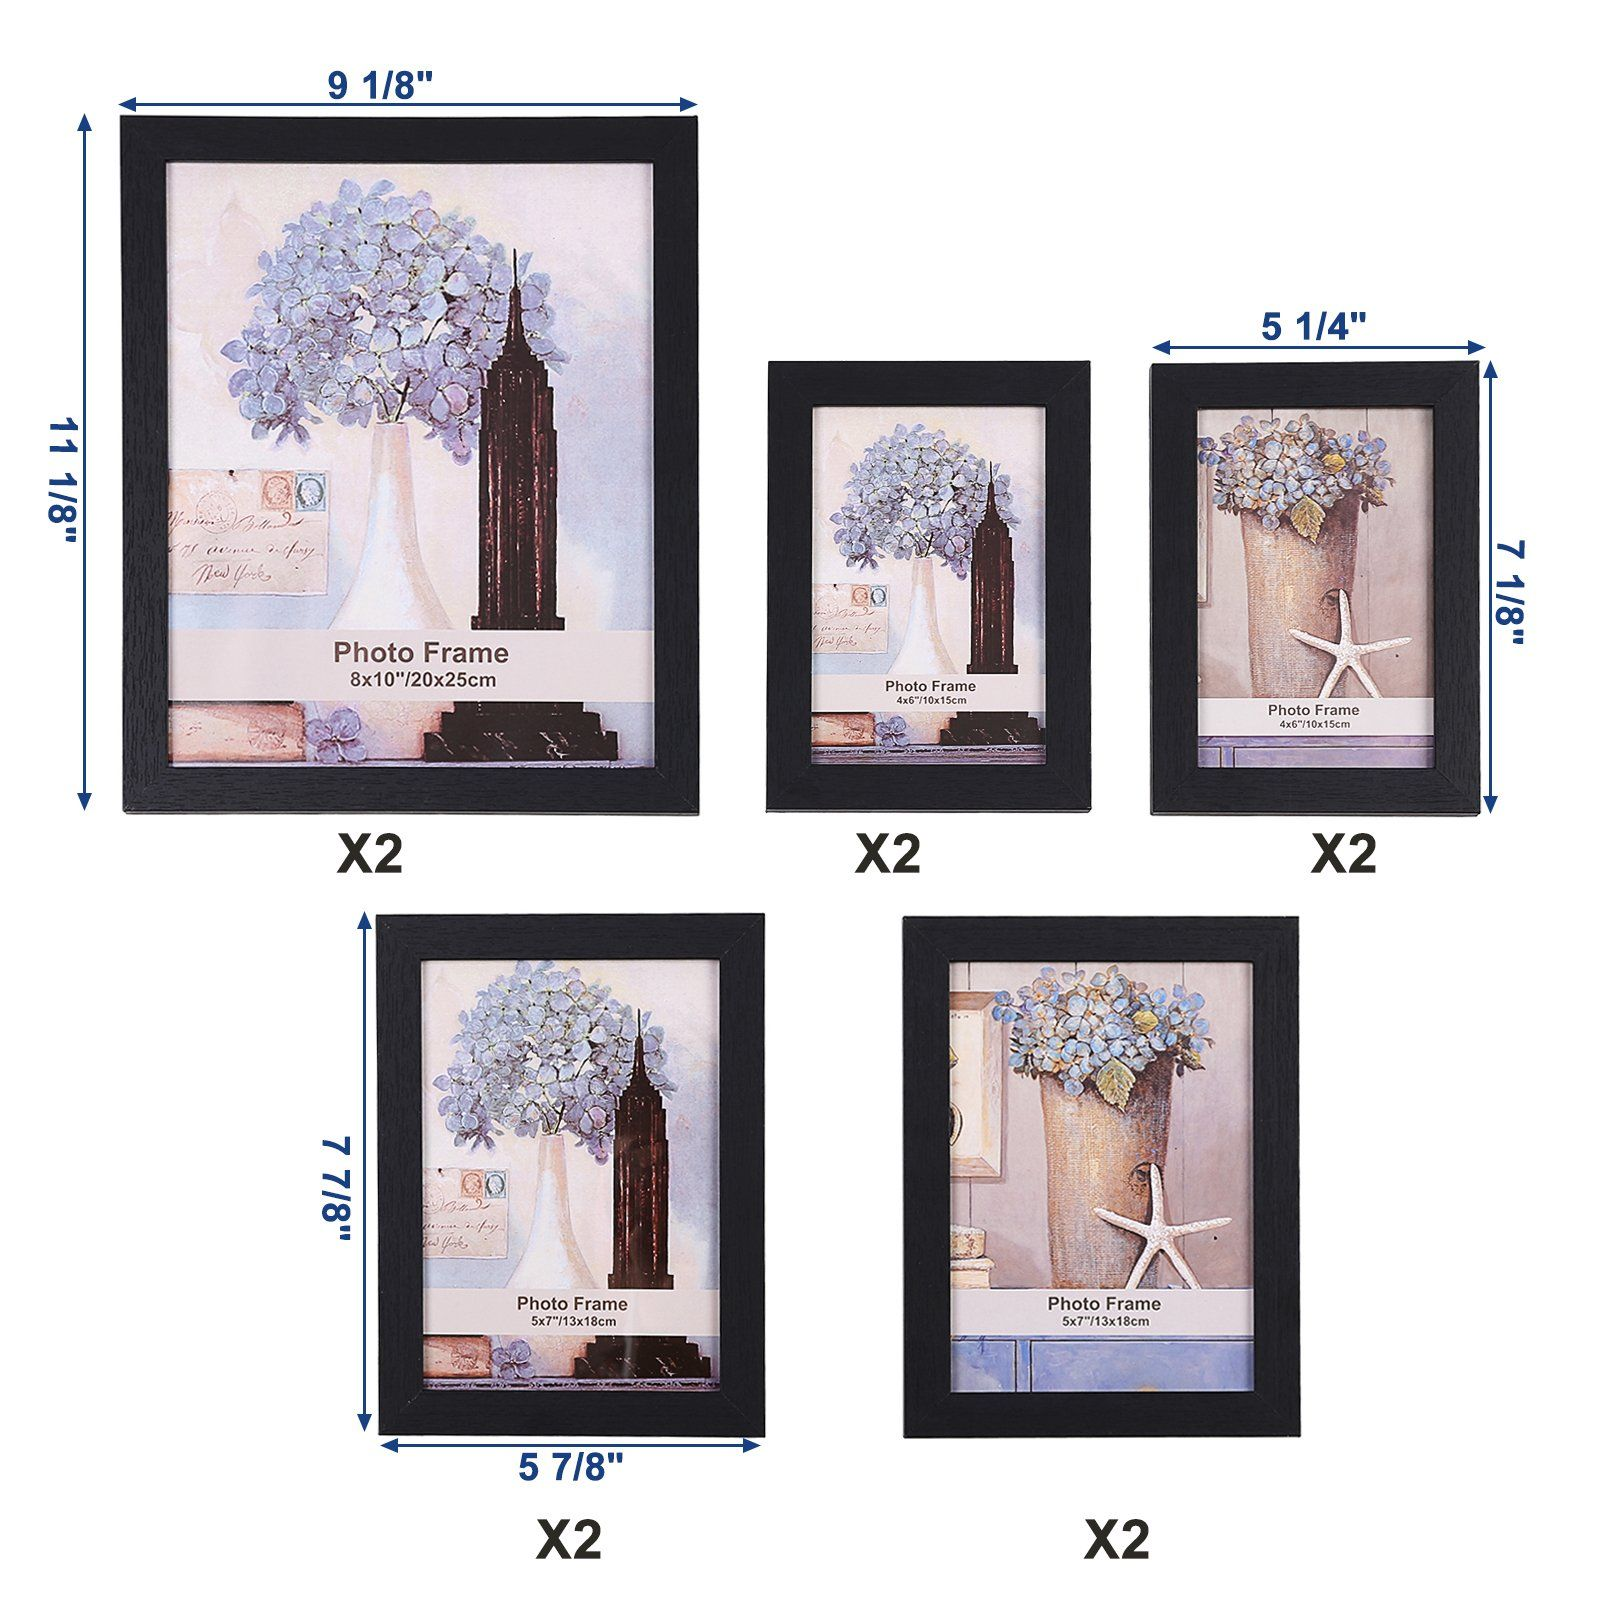 SONGMICS Picture Frames Set of 10 Photo Frame Two 8x10 in Four 5x7 ...